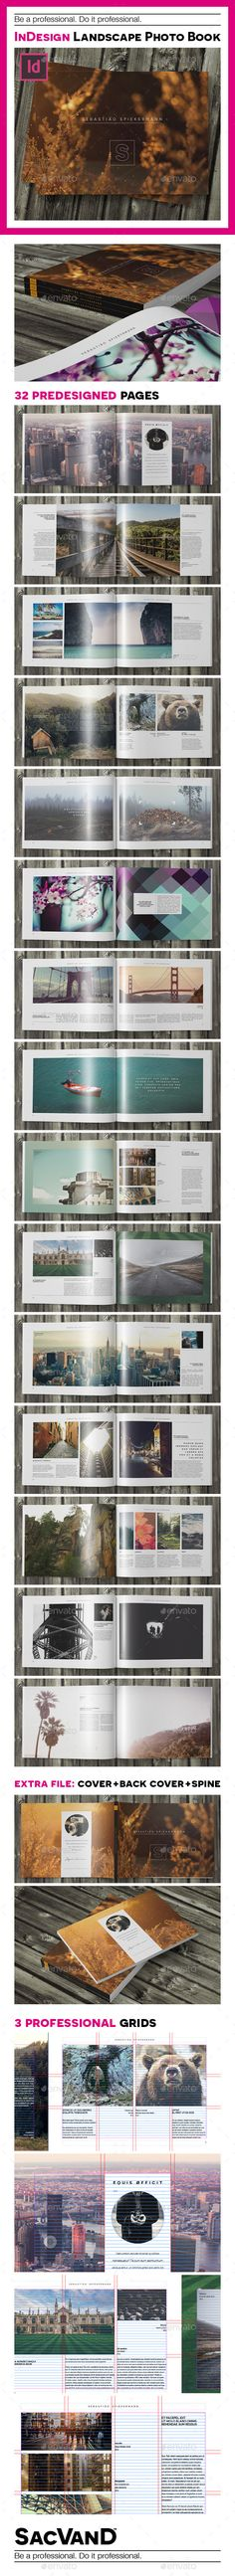 Indesign landscape photo book template Template #design #print Download: http://graphicriver.net/item/indesign-landscape-photo-book-template/9121284?ref=ksioks